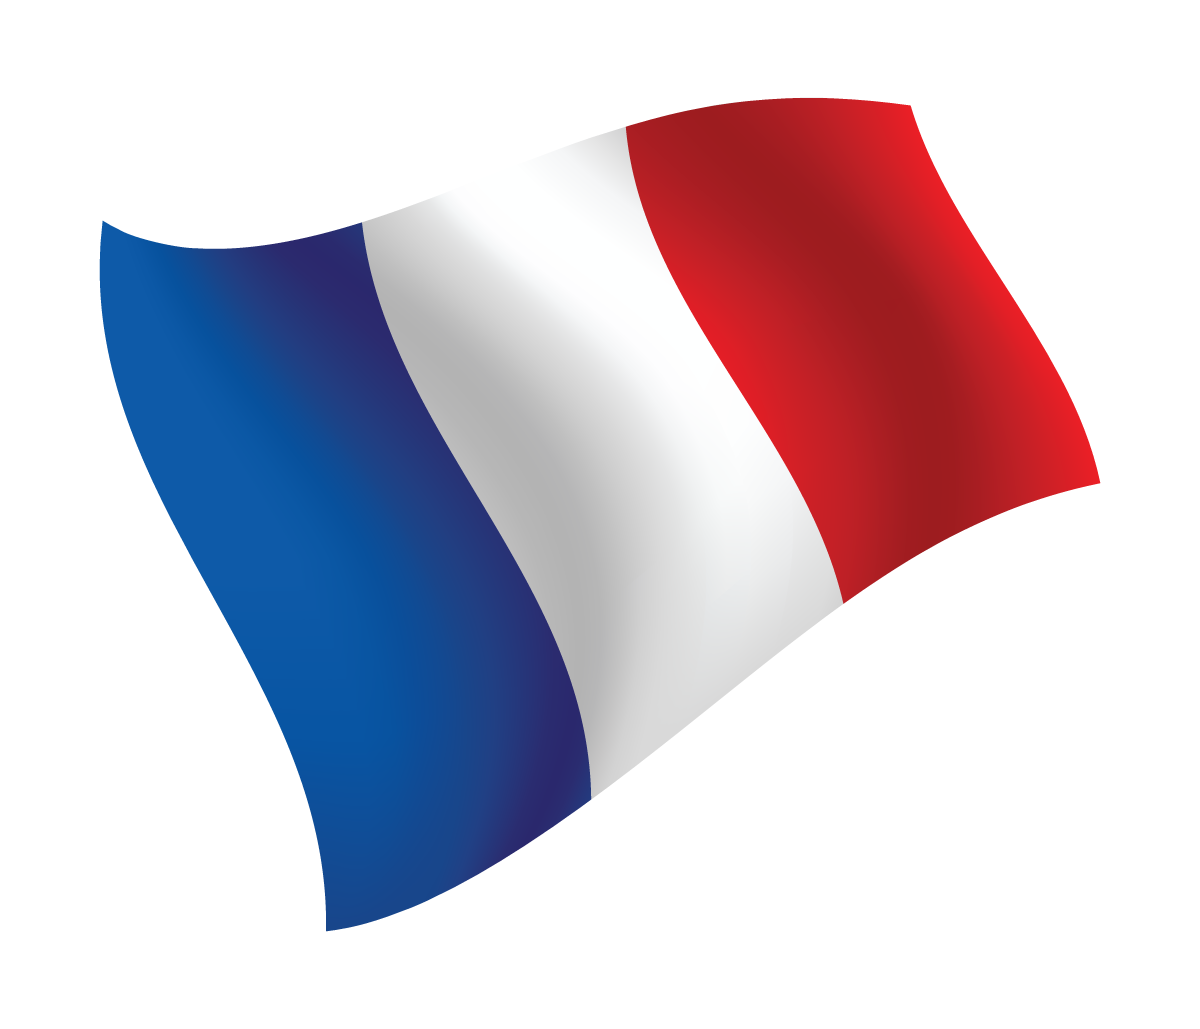 France Church  Planting Training  Offer scholarships and produce resources to train prospective French church planters.